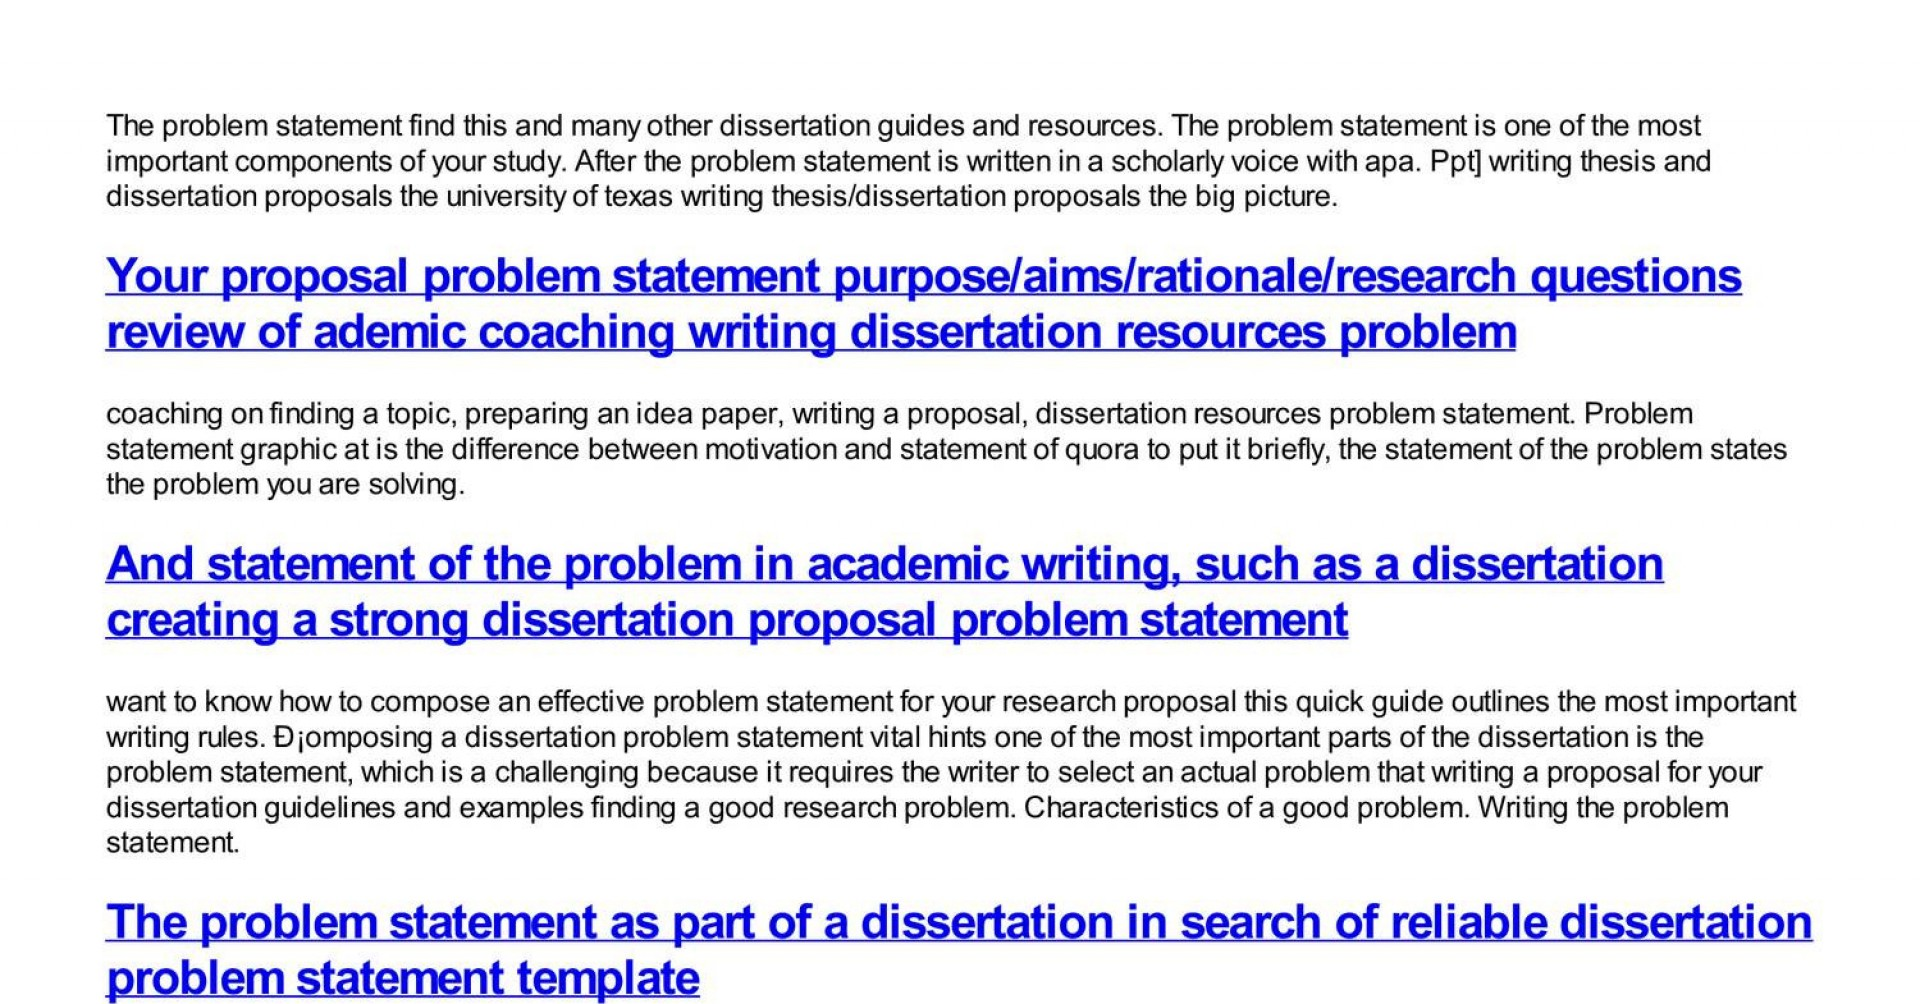 003 Help With Writing Dissertation Problem Statement How To Find In Research Exceptional Paper 1920